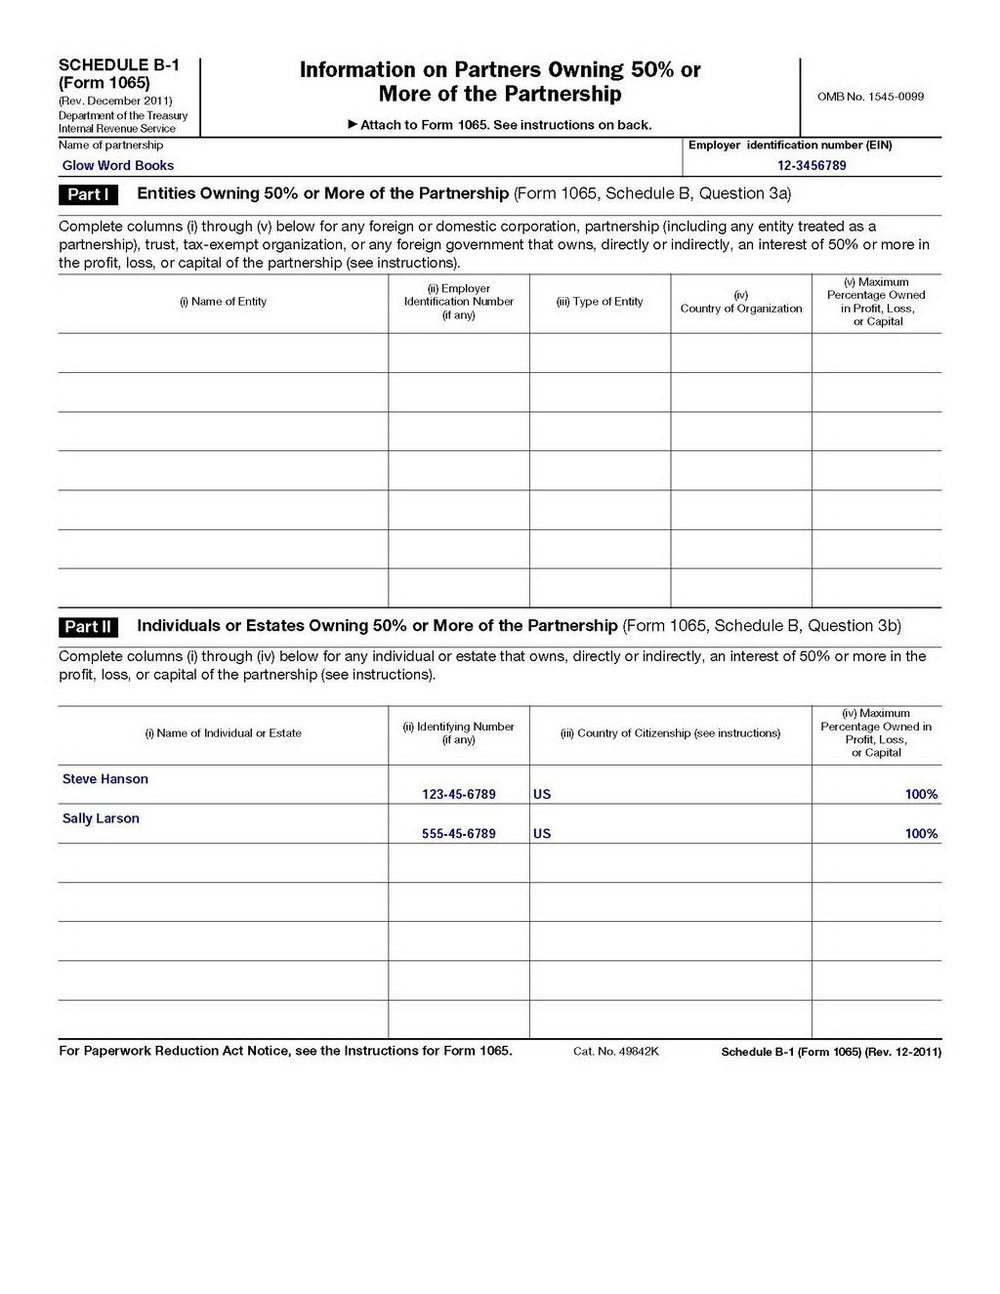 How To Fill Out A 1099 Form Electronically